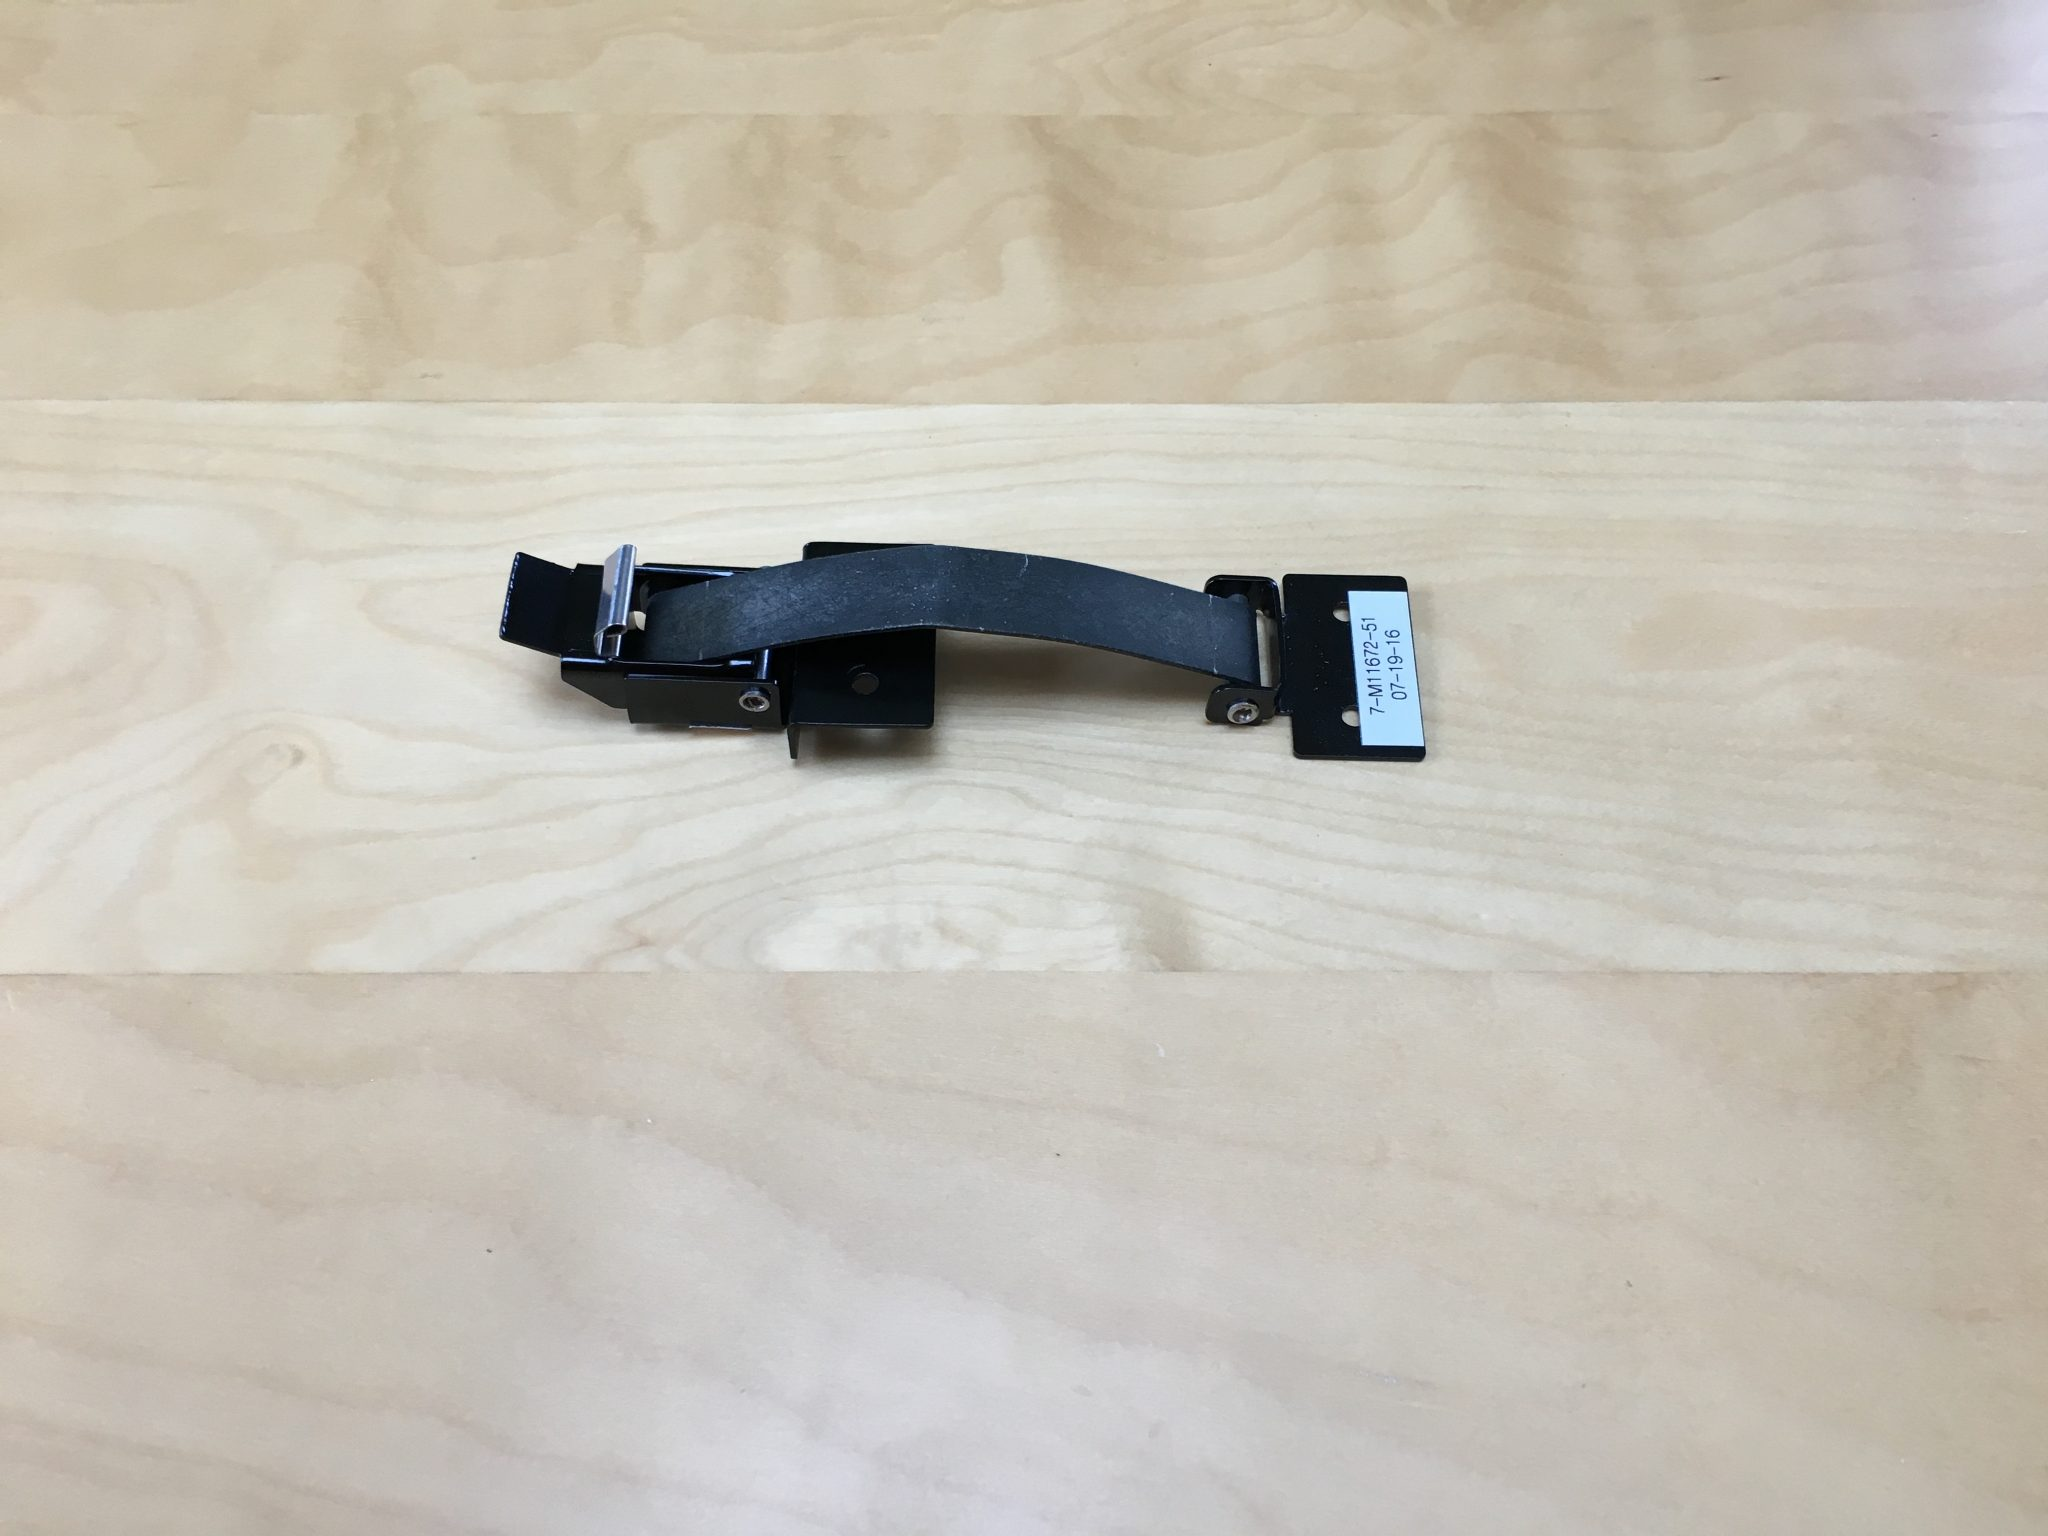 Another prototype clamp - getting smaller